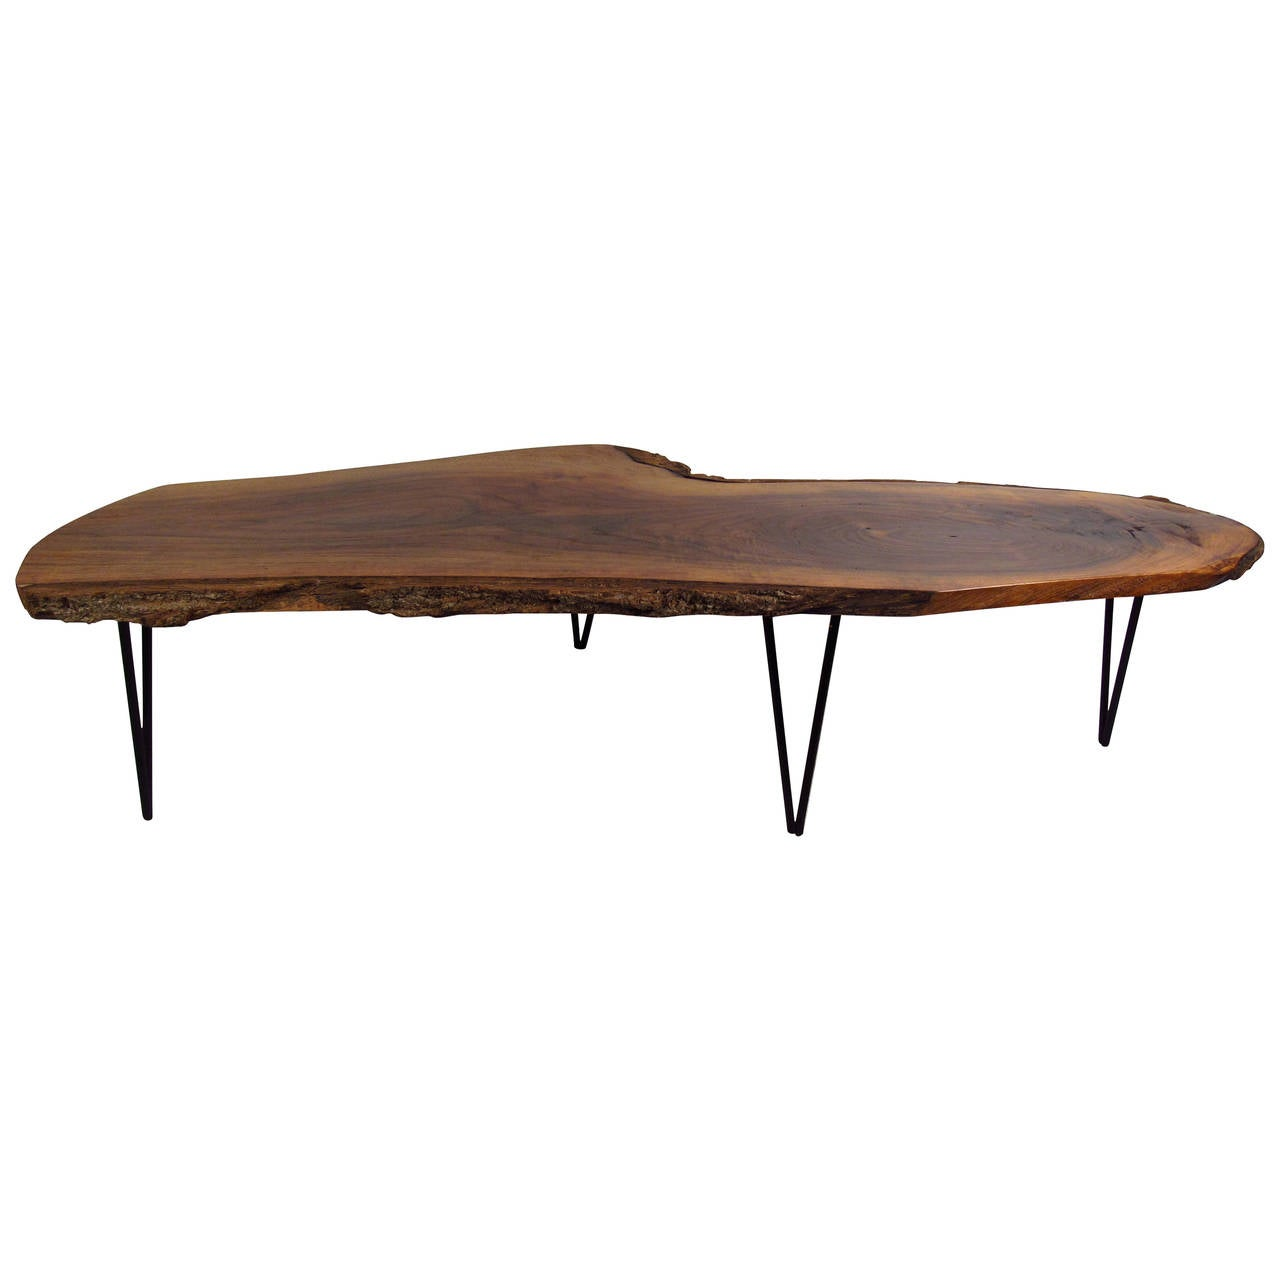 Live Edge Slab Table With Hairpin Legs At 1stdibs: one of a kind coffee tables